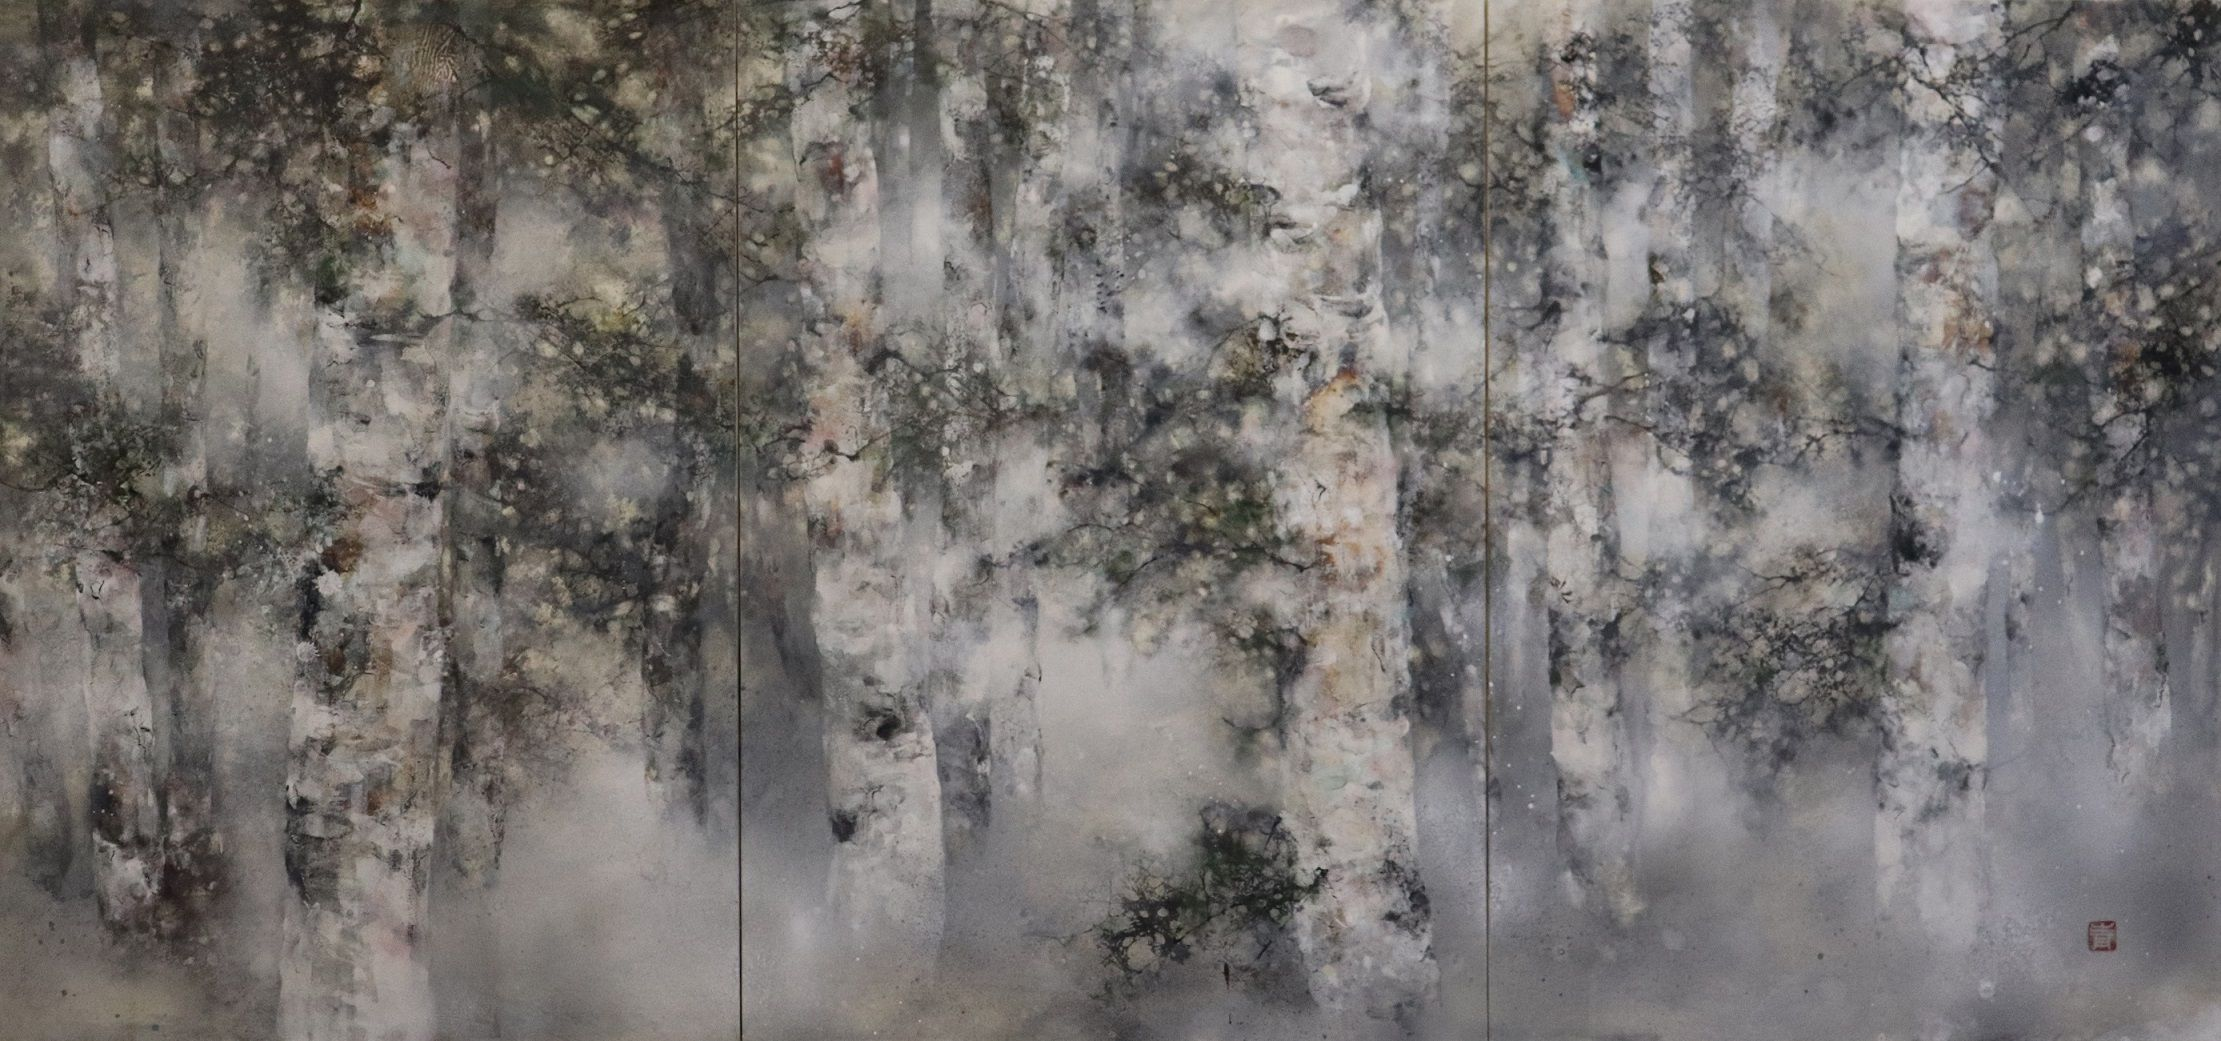 Plenitude,Chen Yiching,Contemporary painting